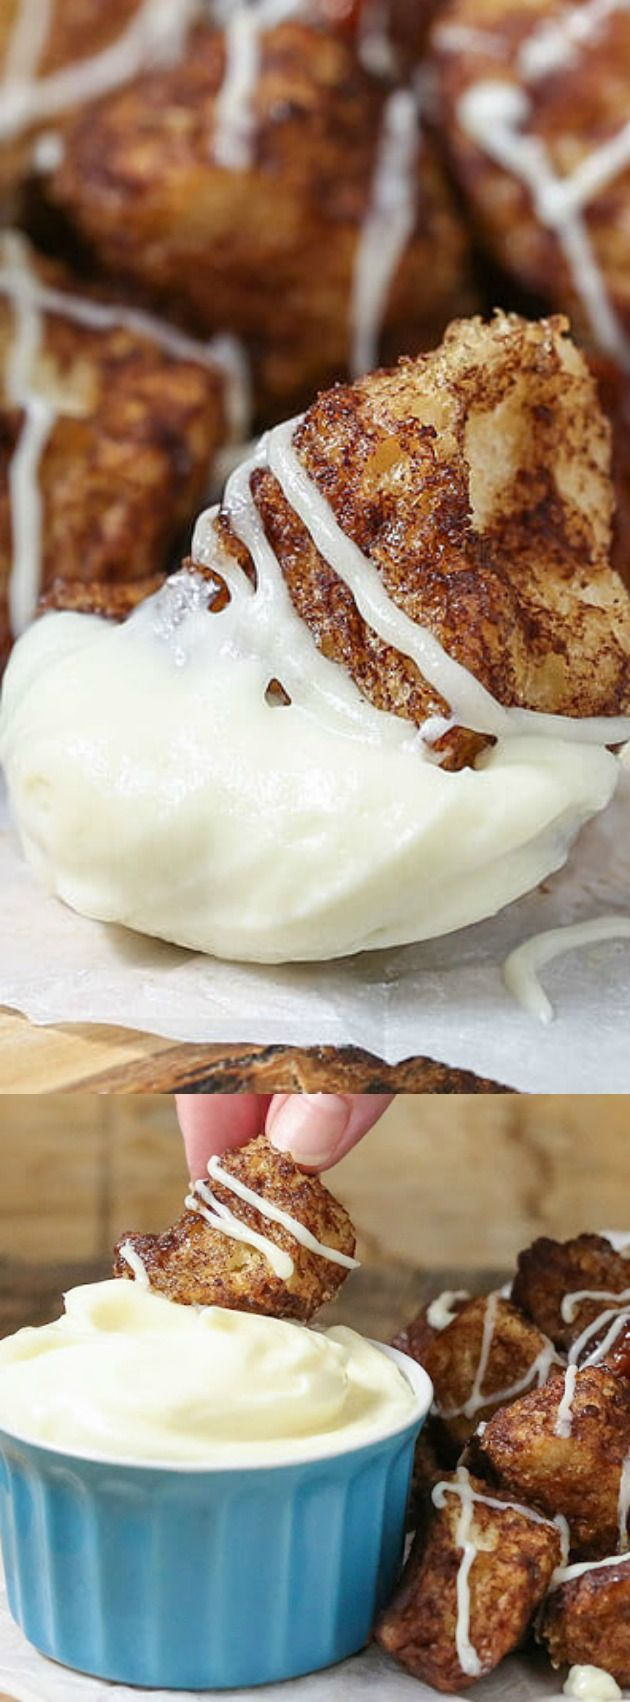 This Slow Cooker Cinnamon Roll Pull Apart Bread from The Slow Roasted Italian is not only delicious, but it is SO simple to make too! The recipe combines everything you love about monkey bread and homemade cinnamon rolls into one delicious sweet treat!